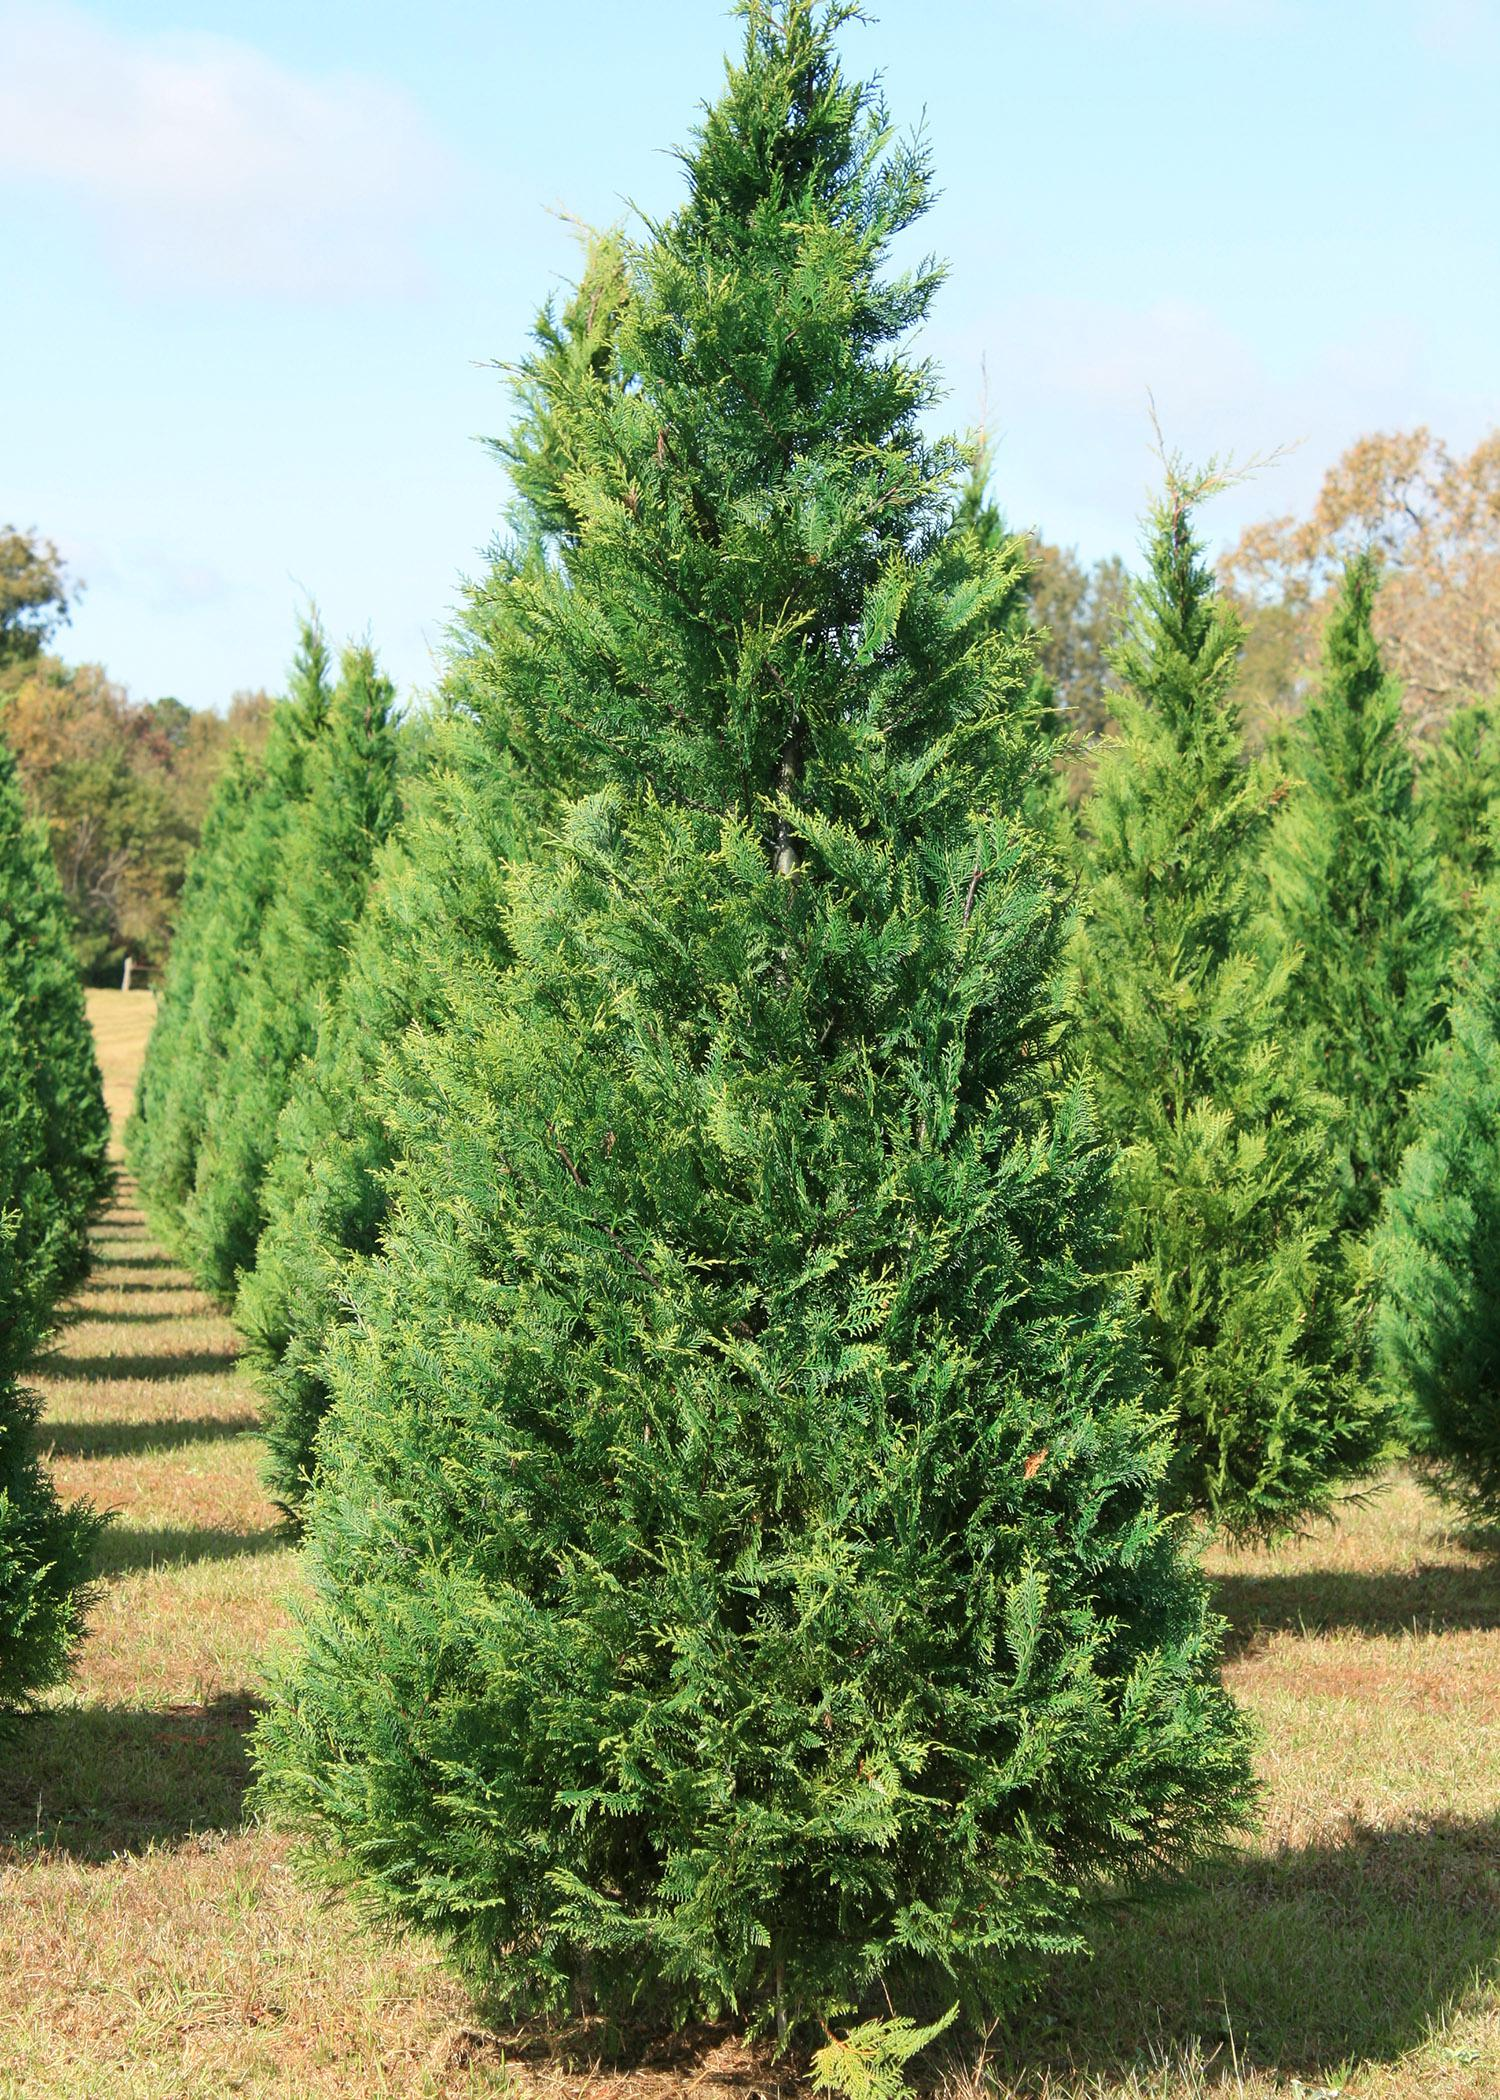 mississippi christmas tree growers offer high quality beautiful trees for holiday decorating these - Christmas Tree Farming